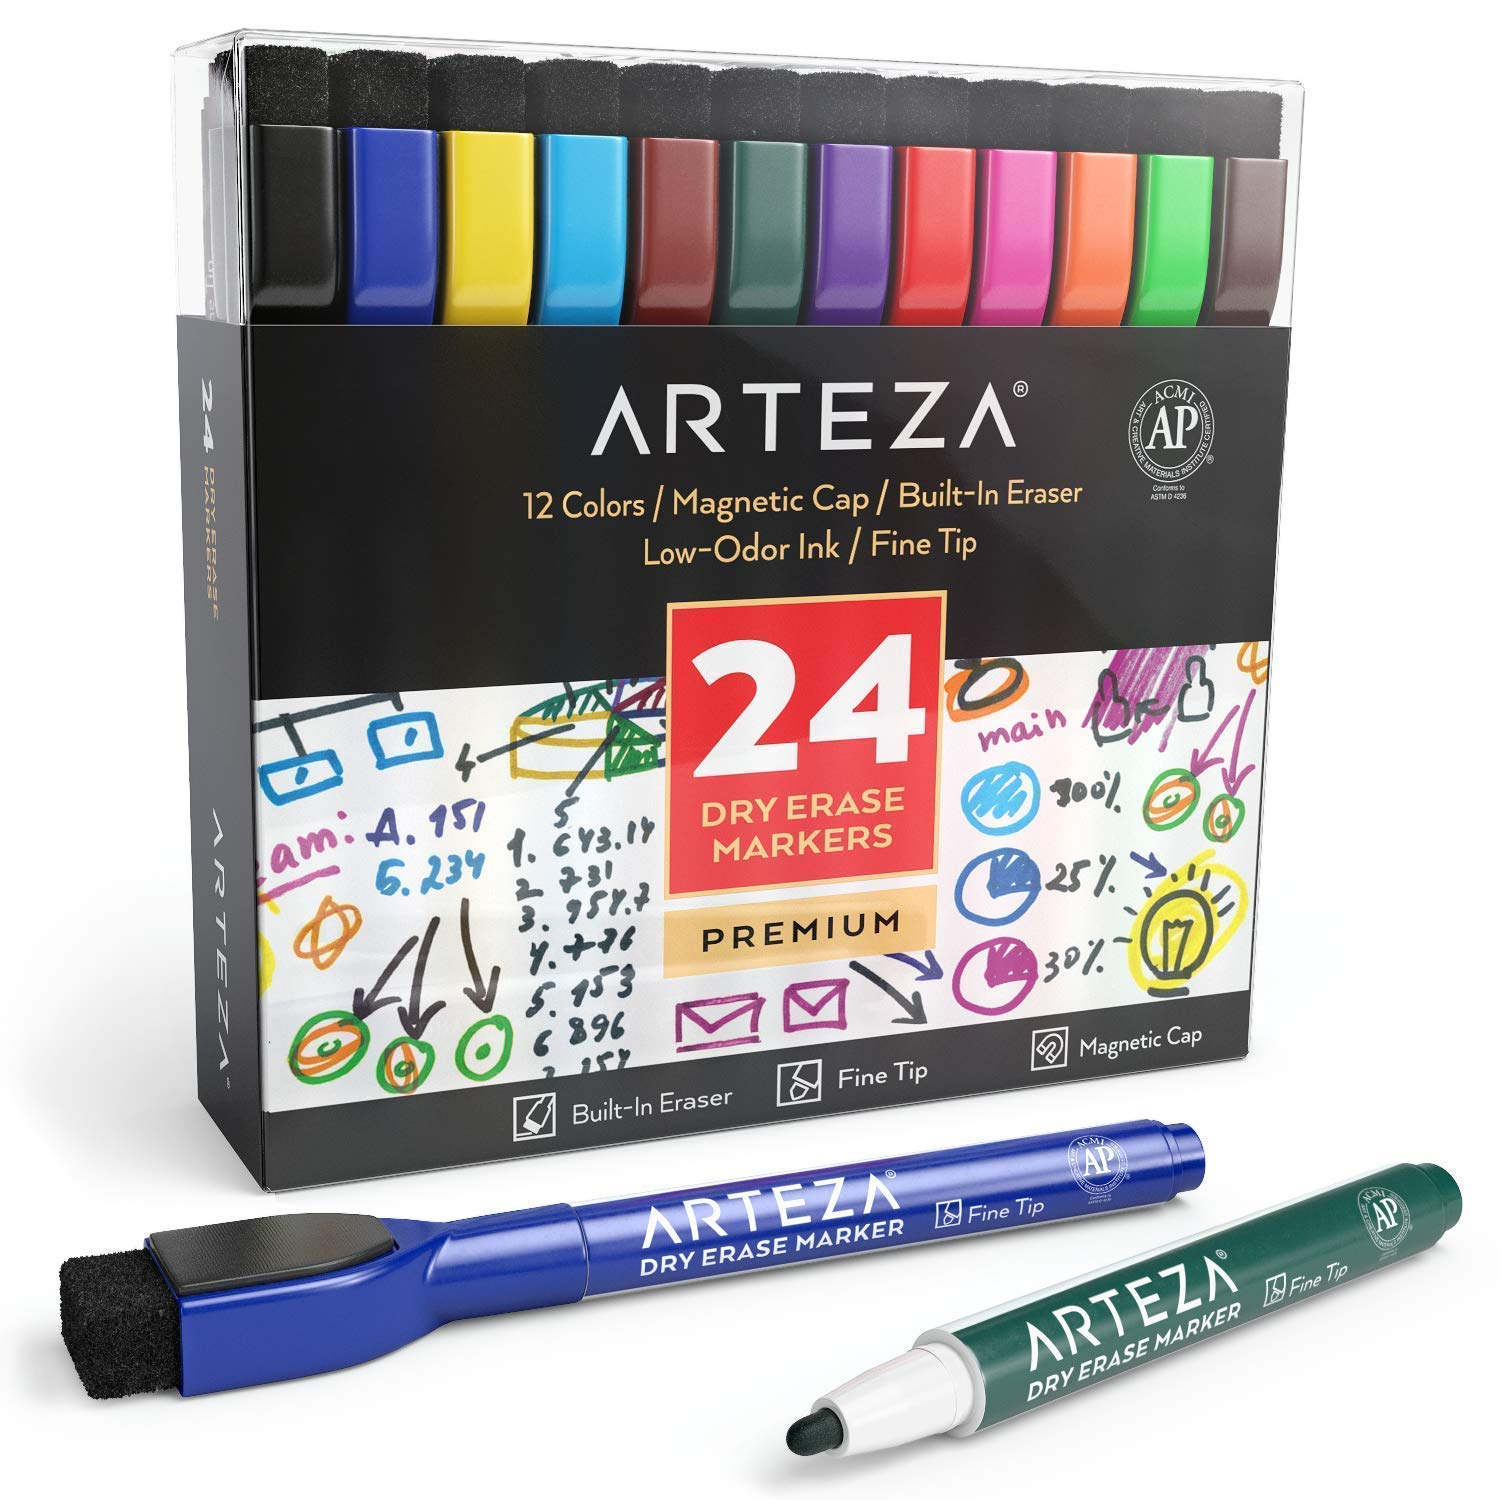 ARTEZA Magnetic Dry Erase Markers with Eraser, Pack of 24 (with Fine Tip), 12 Assorted Colors with Low-Odor Ink, Whiteboard Pens is Perfect for School, Office,or Home